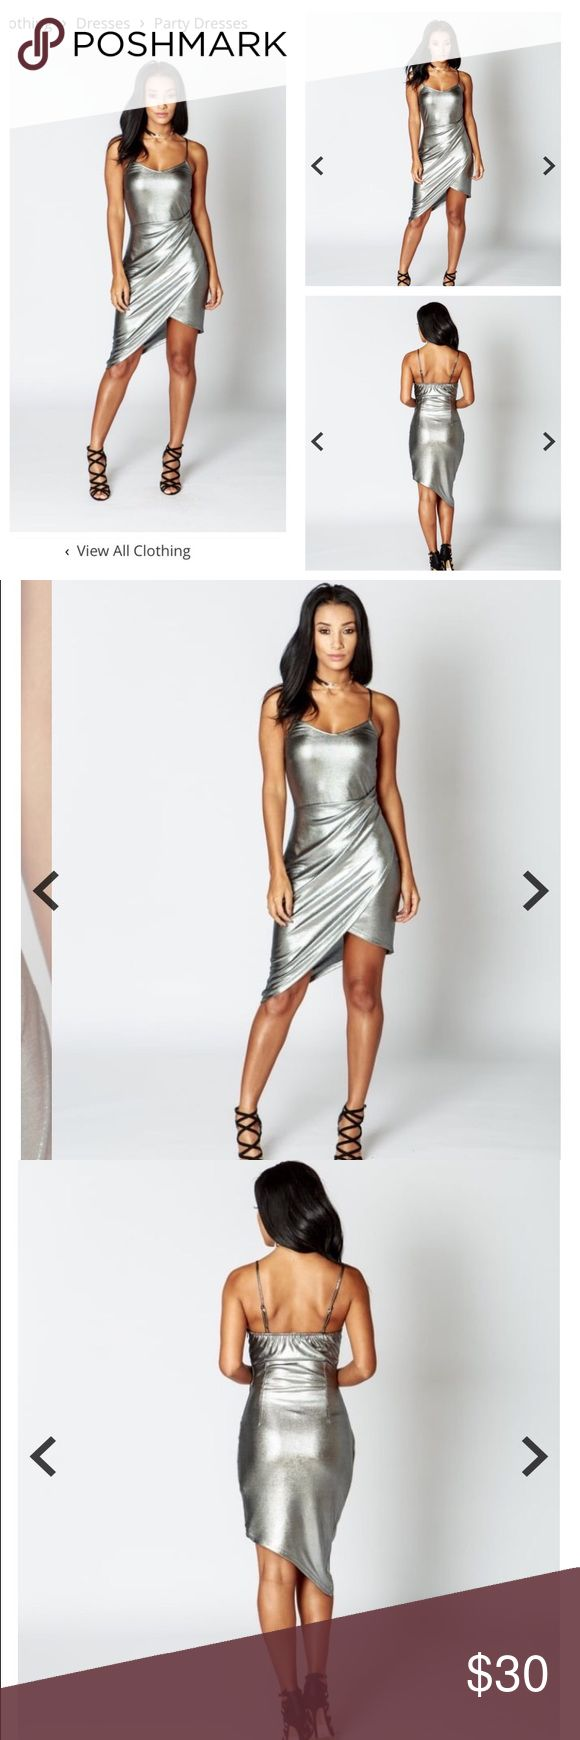 Silver Sparkle Wrap Dress This Silver Wrap Dress is PERFECT FOR NEW YEARS ! Made from metallic jersey fabric ! Comment below to reserve yours once it's in stock ☺️ pricing will be $25+shipping. Remember : items are in UK sizes, conversion chart is available Dresses Asymmetrical